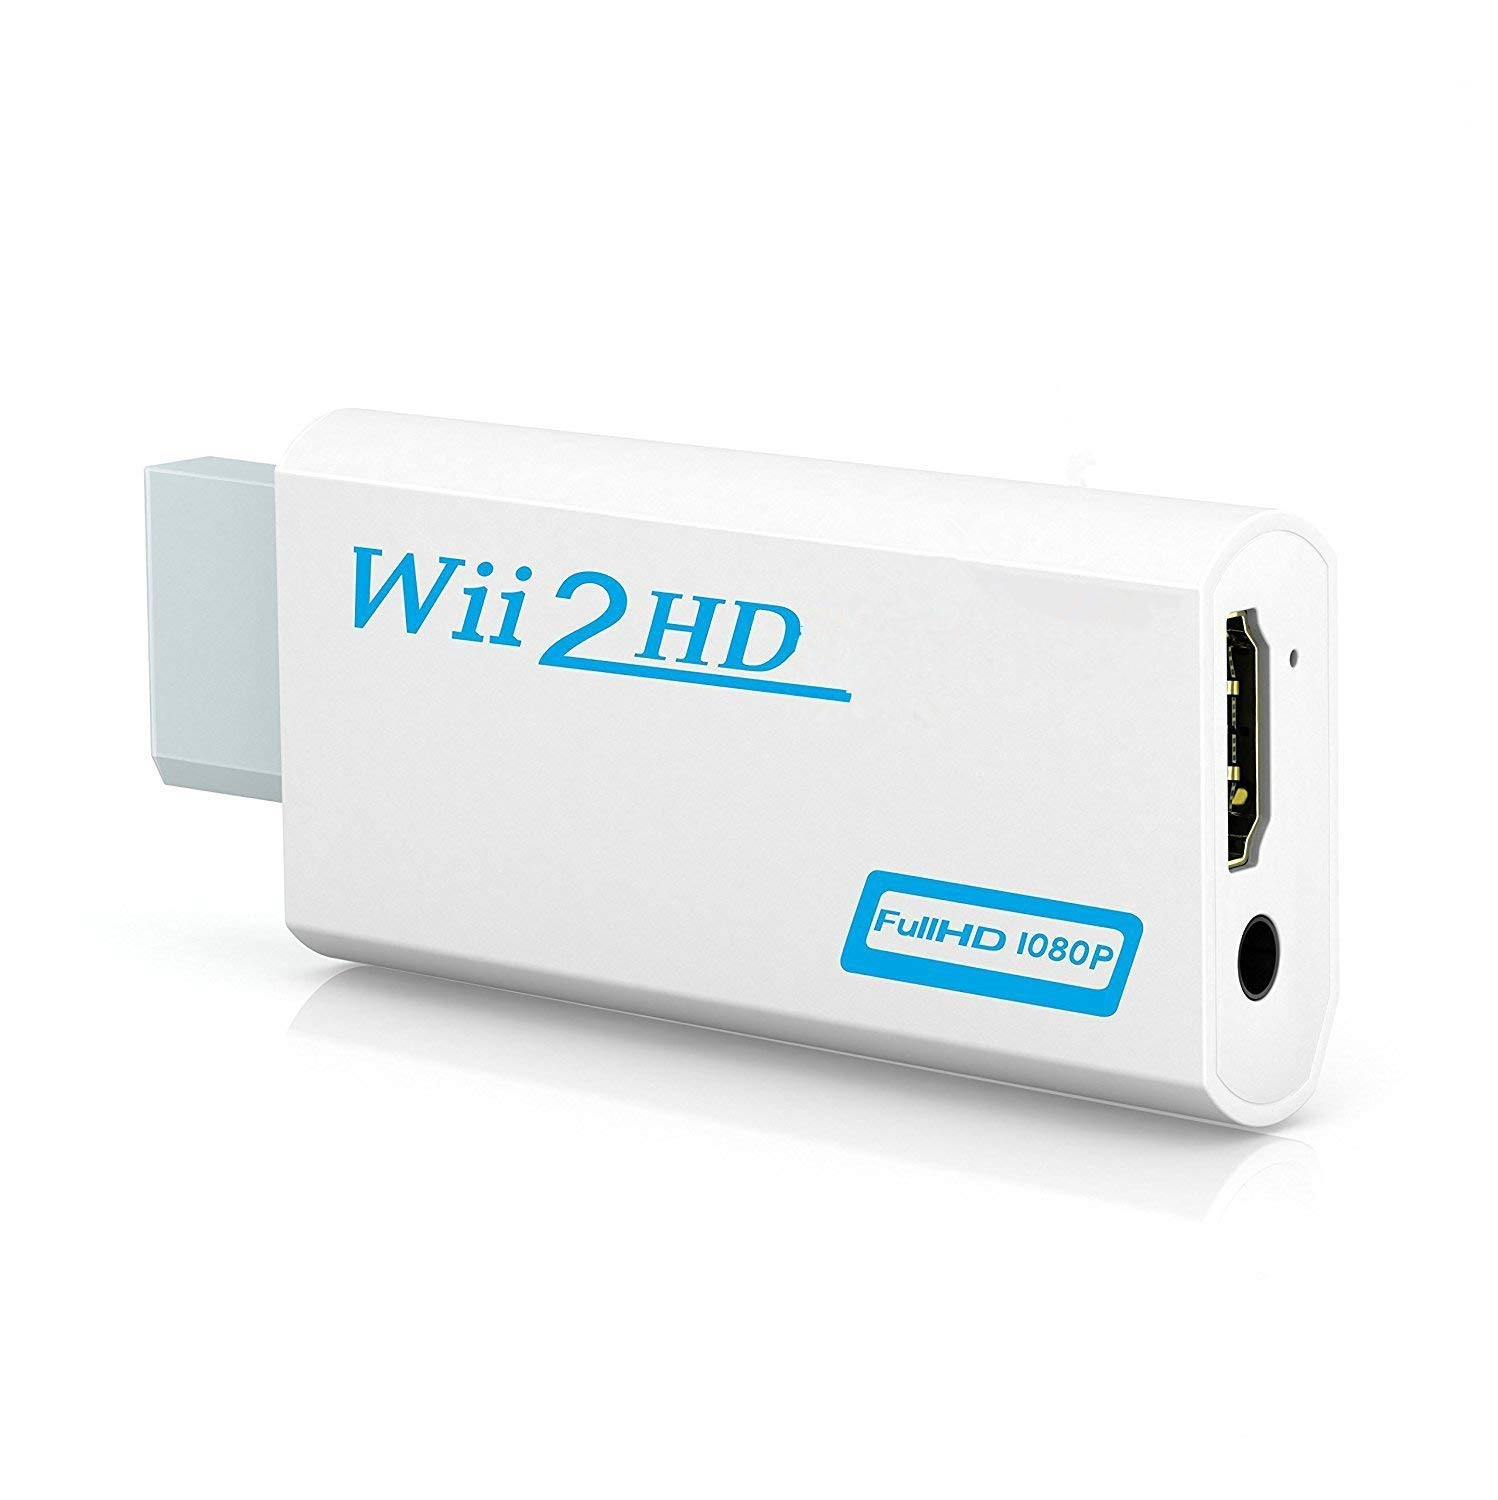 Full HD 1080P Wii to HDMI-compatible Converter Adapter Wii2HDMI-compatible Converter 3.5mm Audio for PC HDTV Monitor Display